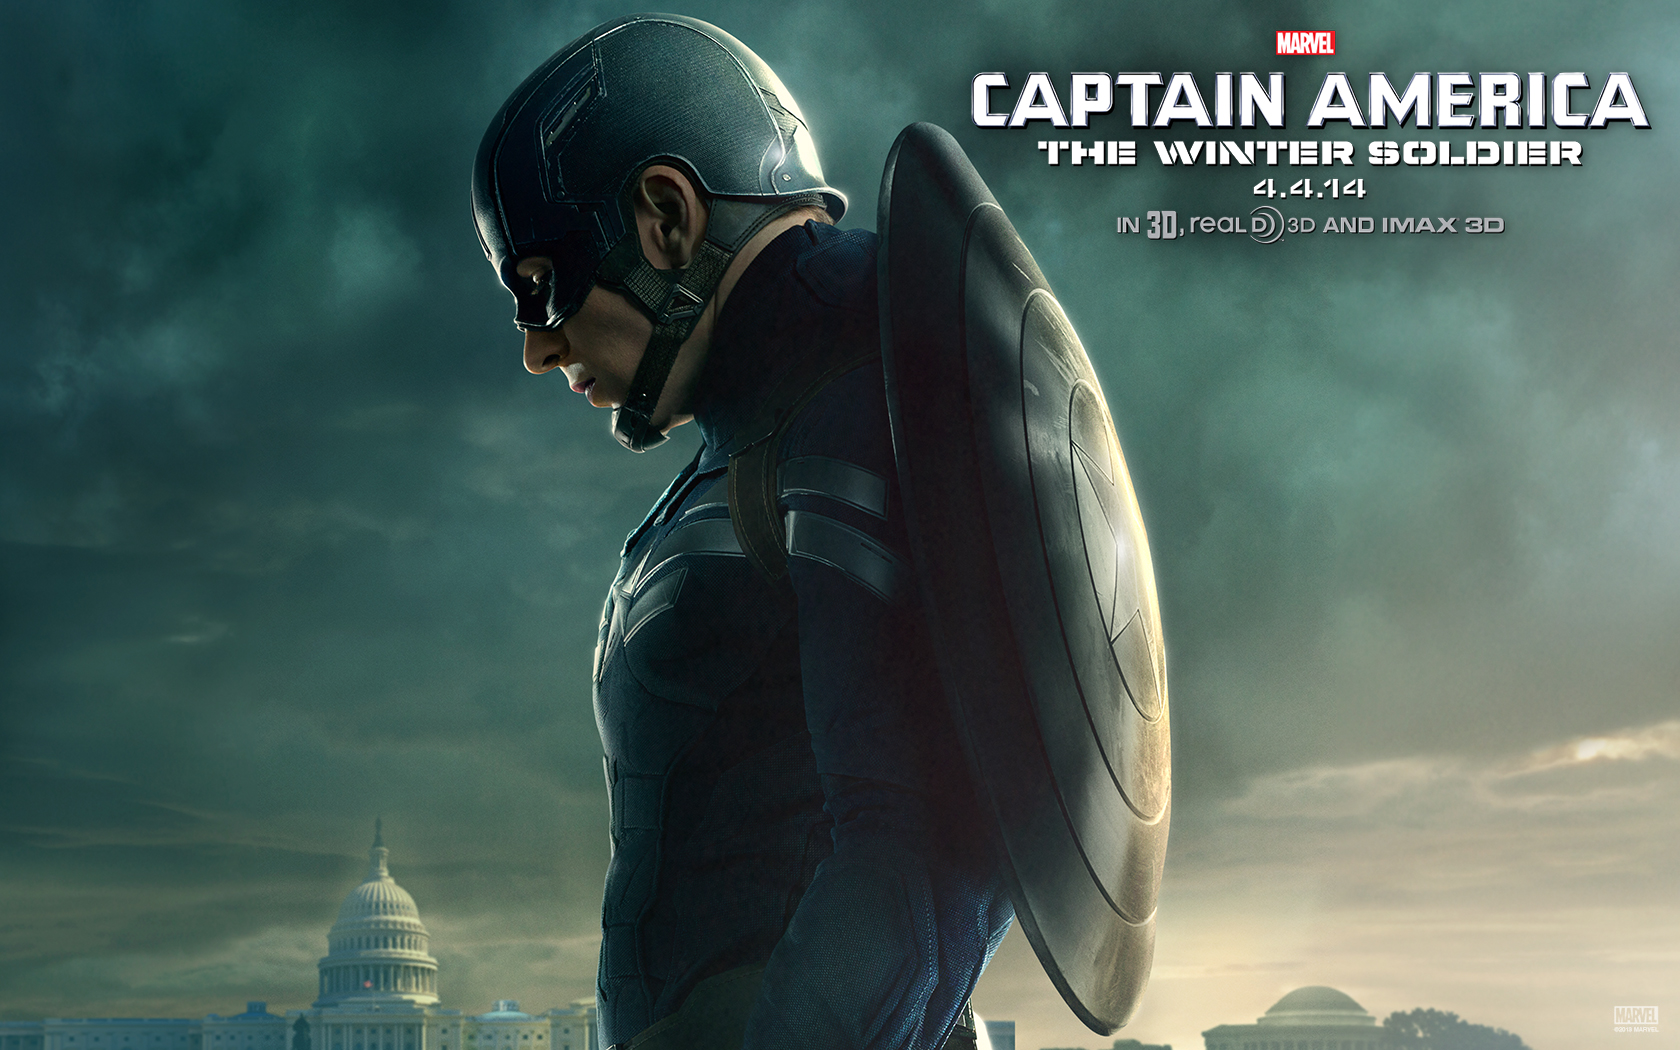 Chris-Evans-as-Captain-America-–-Captain-America-The-Winter-Soldier-wallpaper-wpc5803448